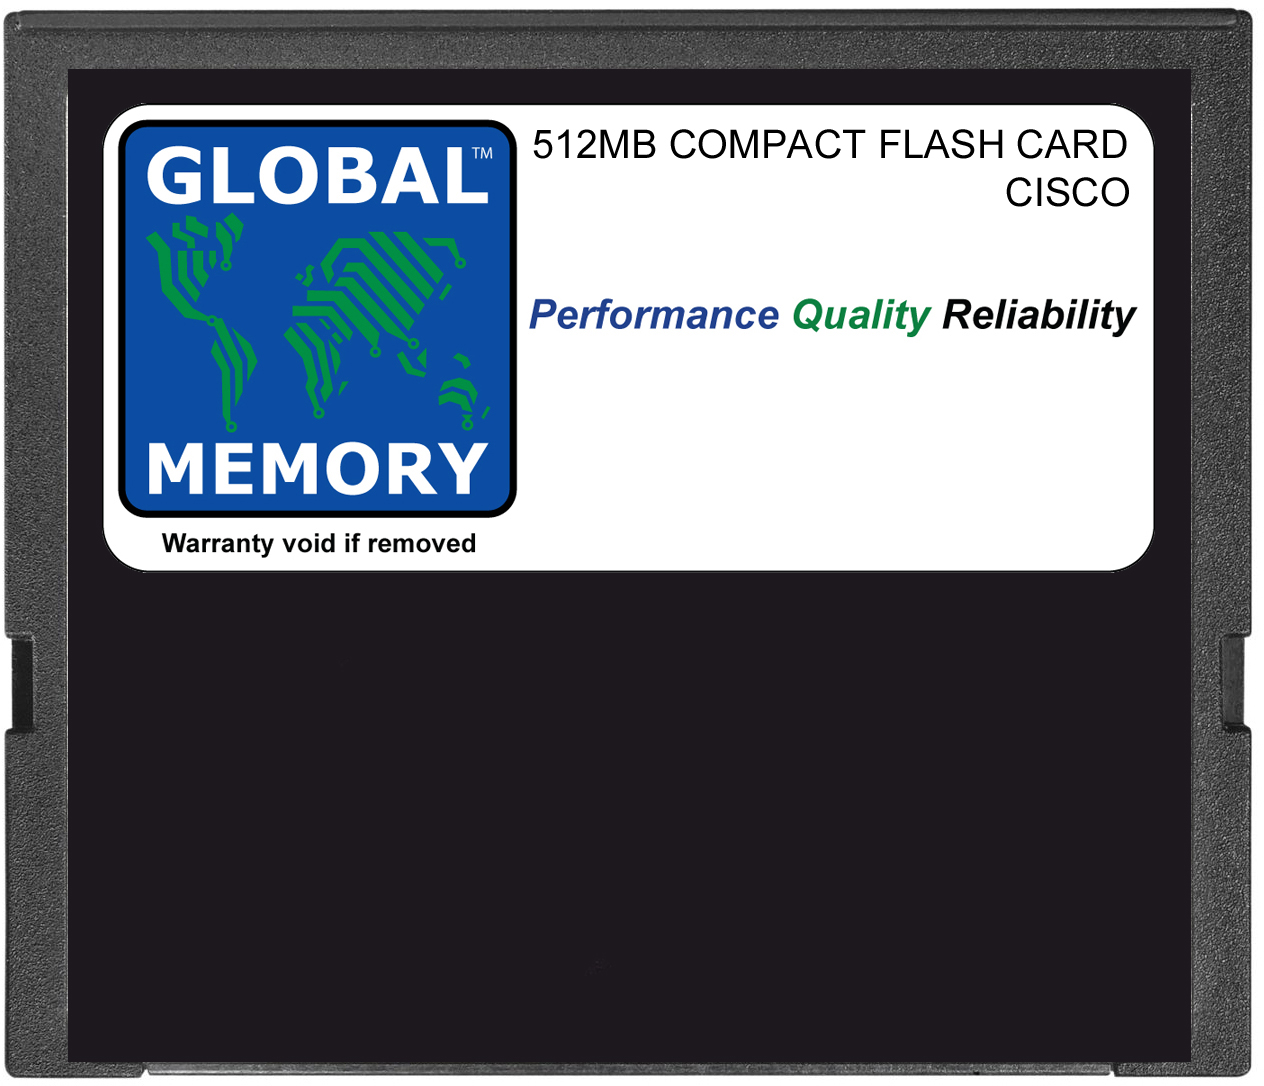 512MB COMPACT FLASH CARD MEMORY FOR CISCO CATALYST 6500 SERIES SWITCHES & 7600 SERIES ROUTERS 720 RSP (MEM-C6K-CPTFL512M)